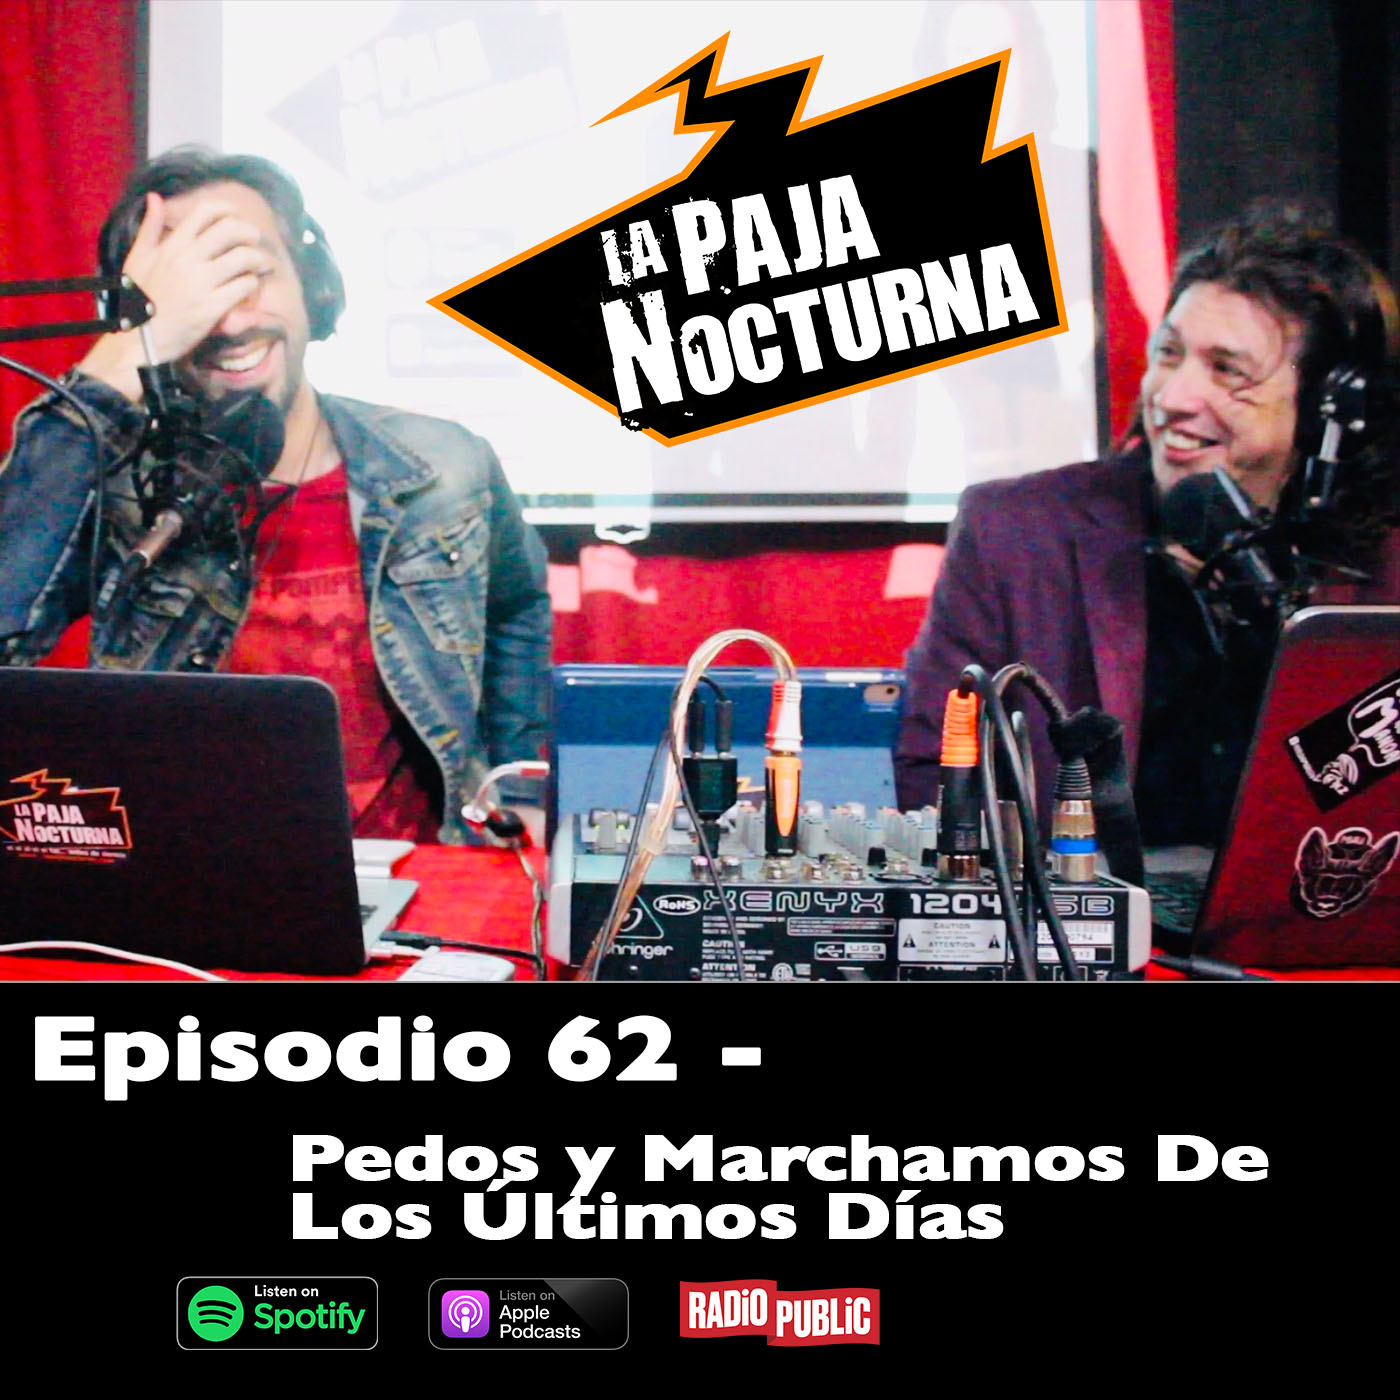 La paja nocturna podcast Episodio 62